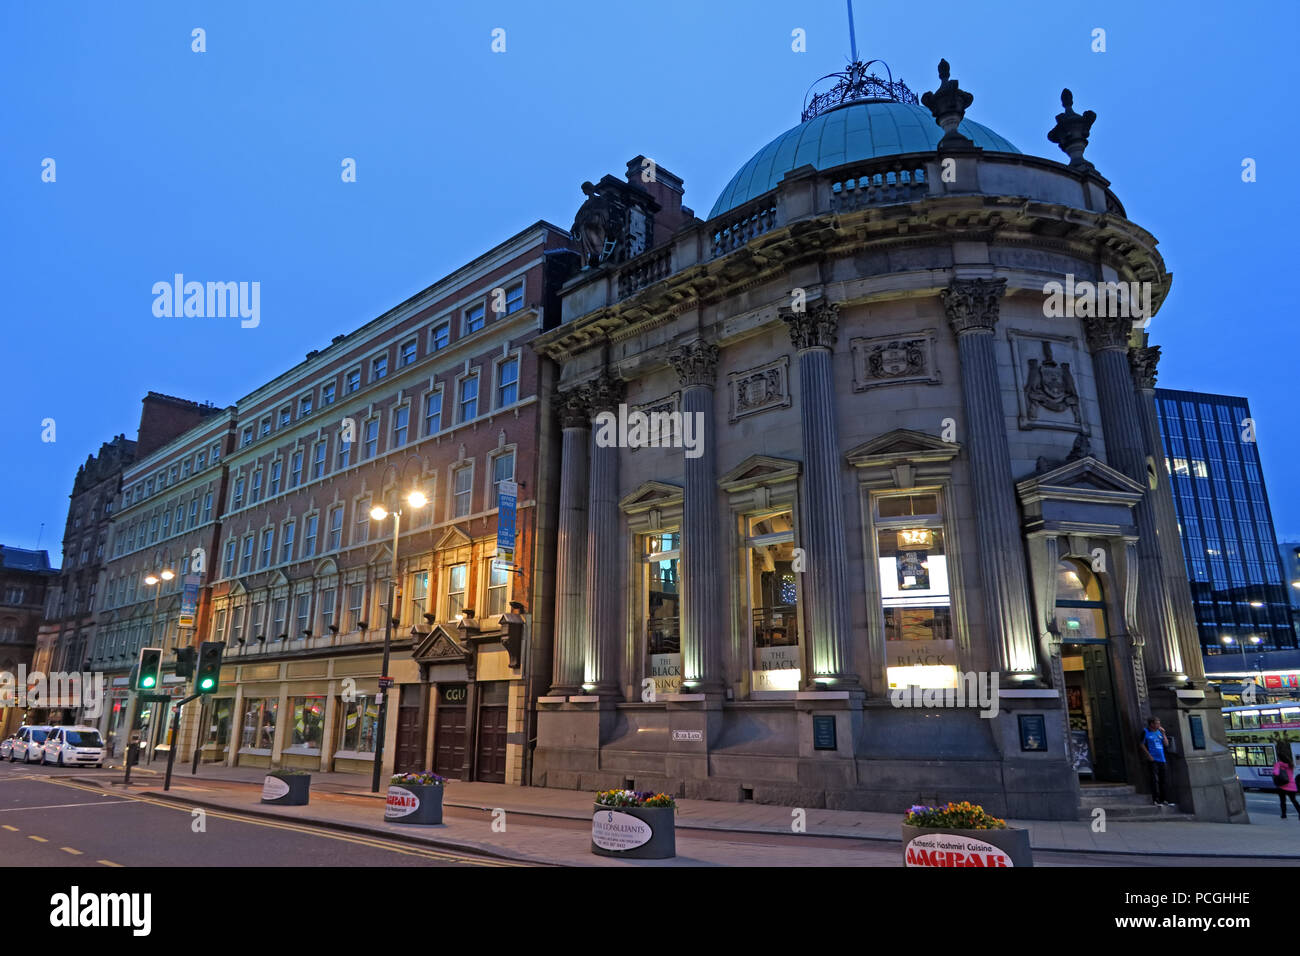 The Black Prince at dusk, Leeds city centre, West Yorkshire, England, LS1, UK - Stock Image